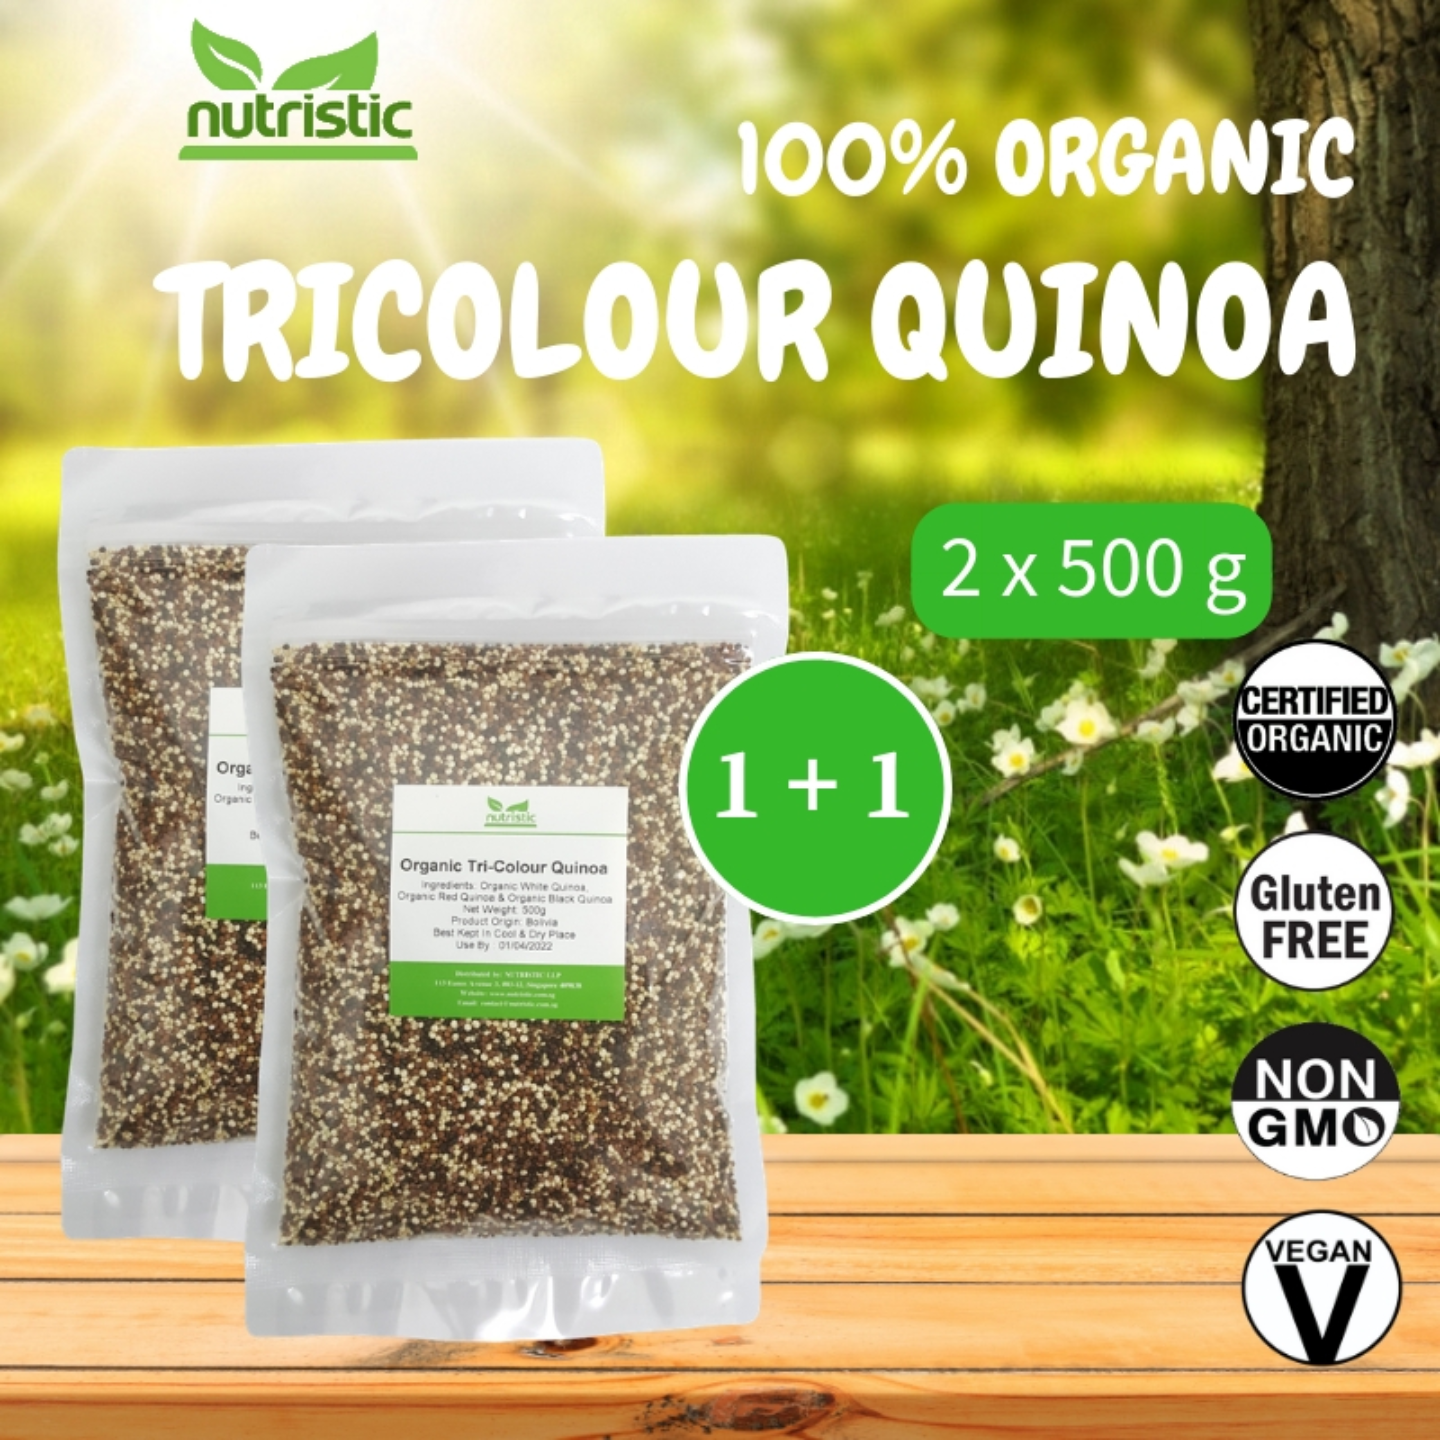 Organic Tricolour Quinoa 500g x2 - Value Bundle 1+1